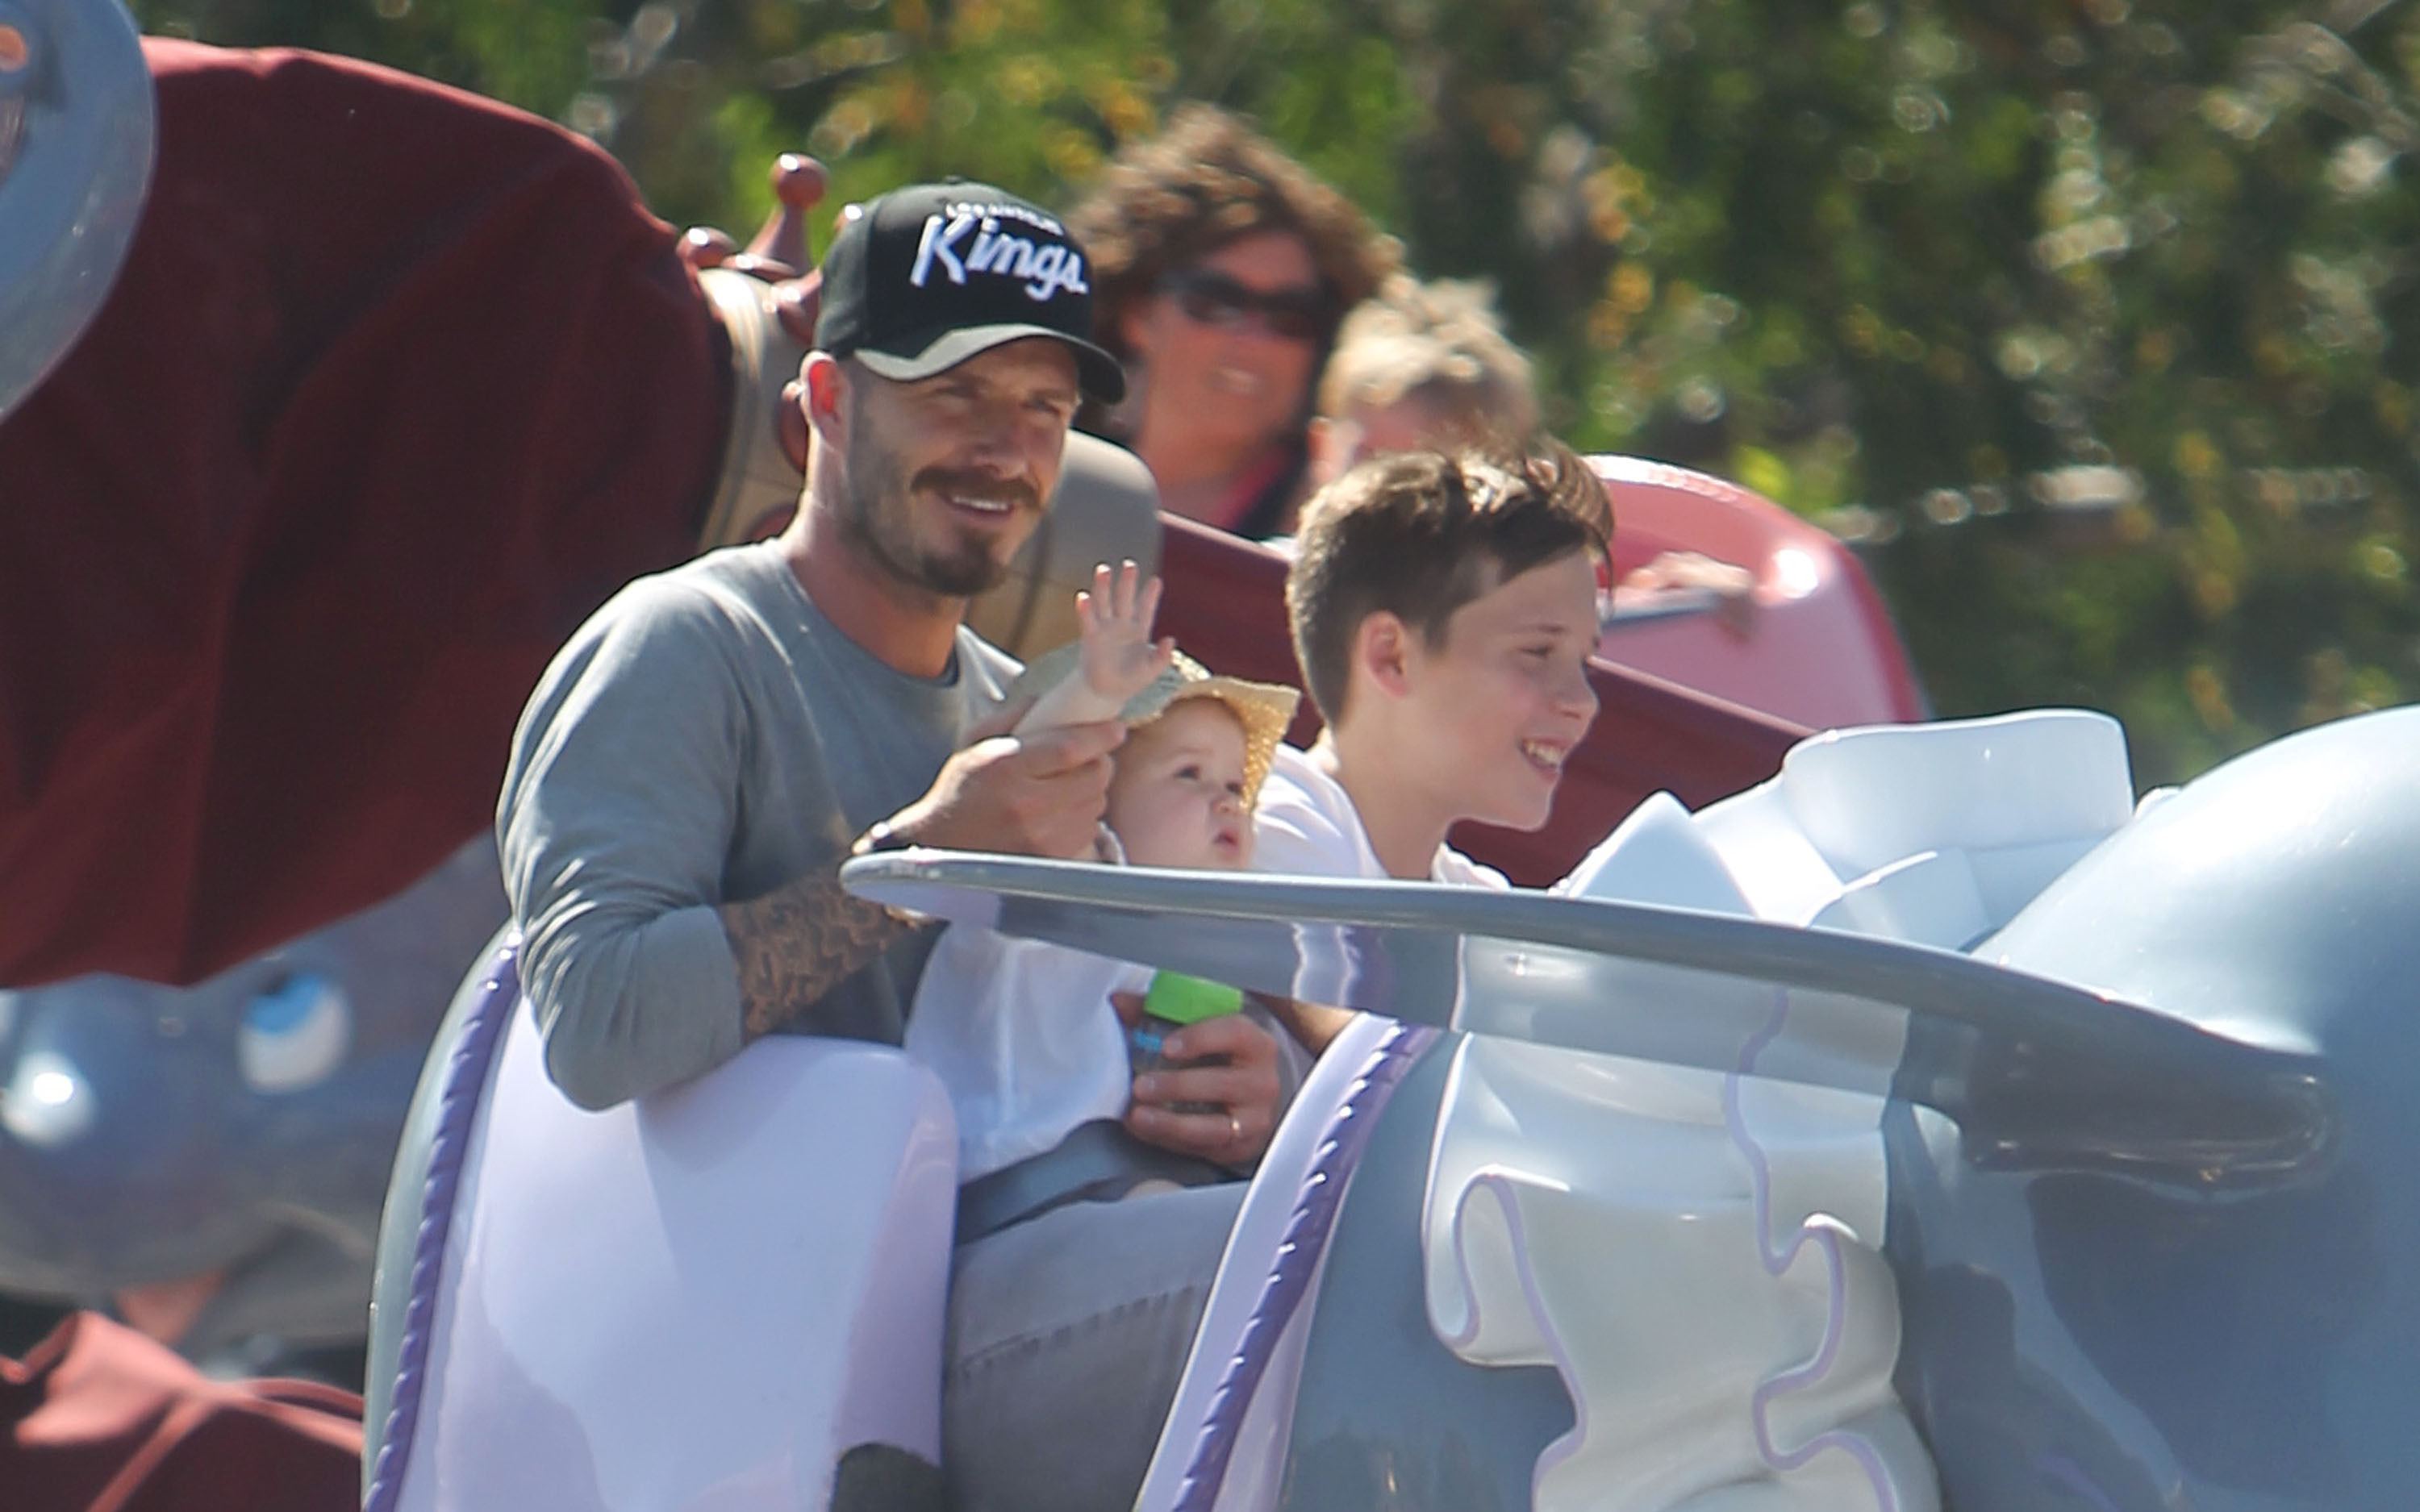 David Beckham rode on a ride at Disneyland in June 2012 with Harper and Brooklyn.